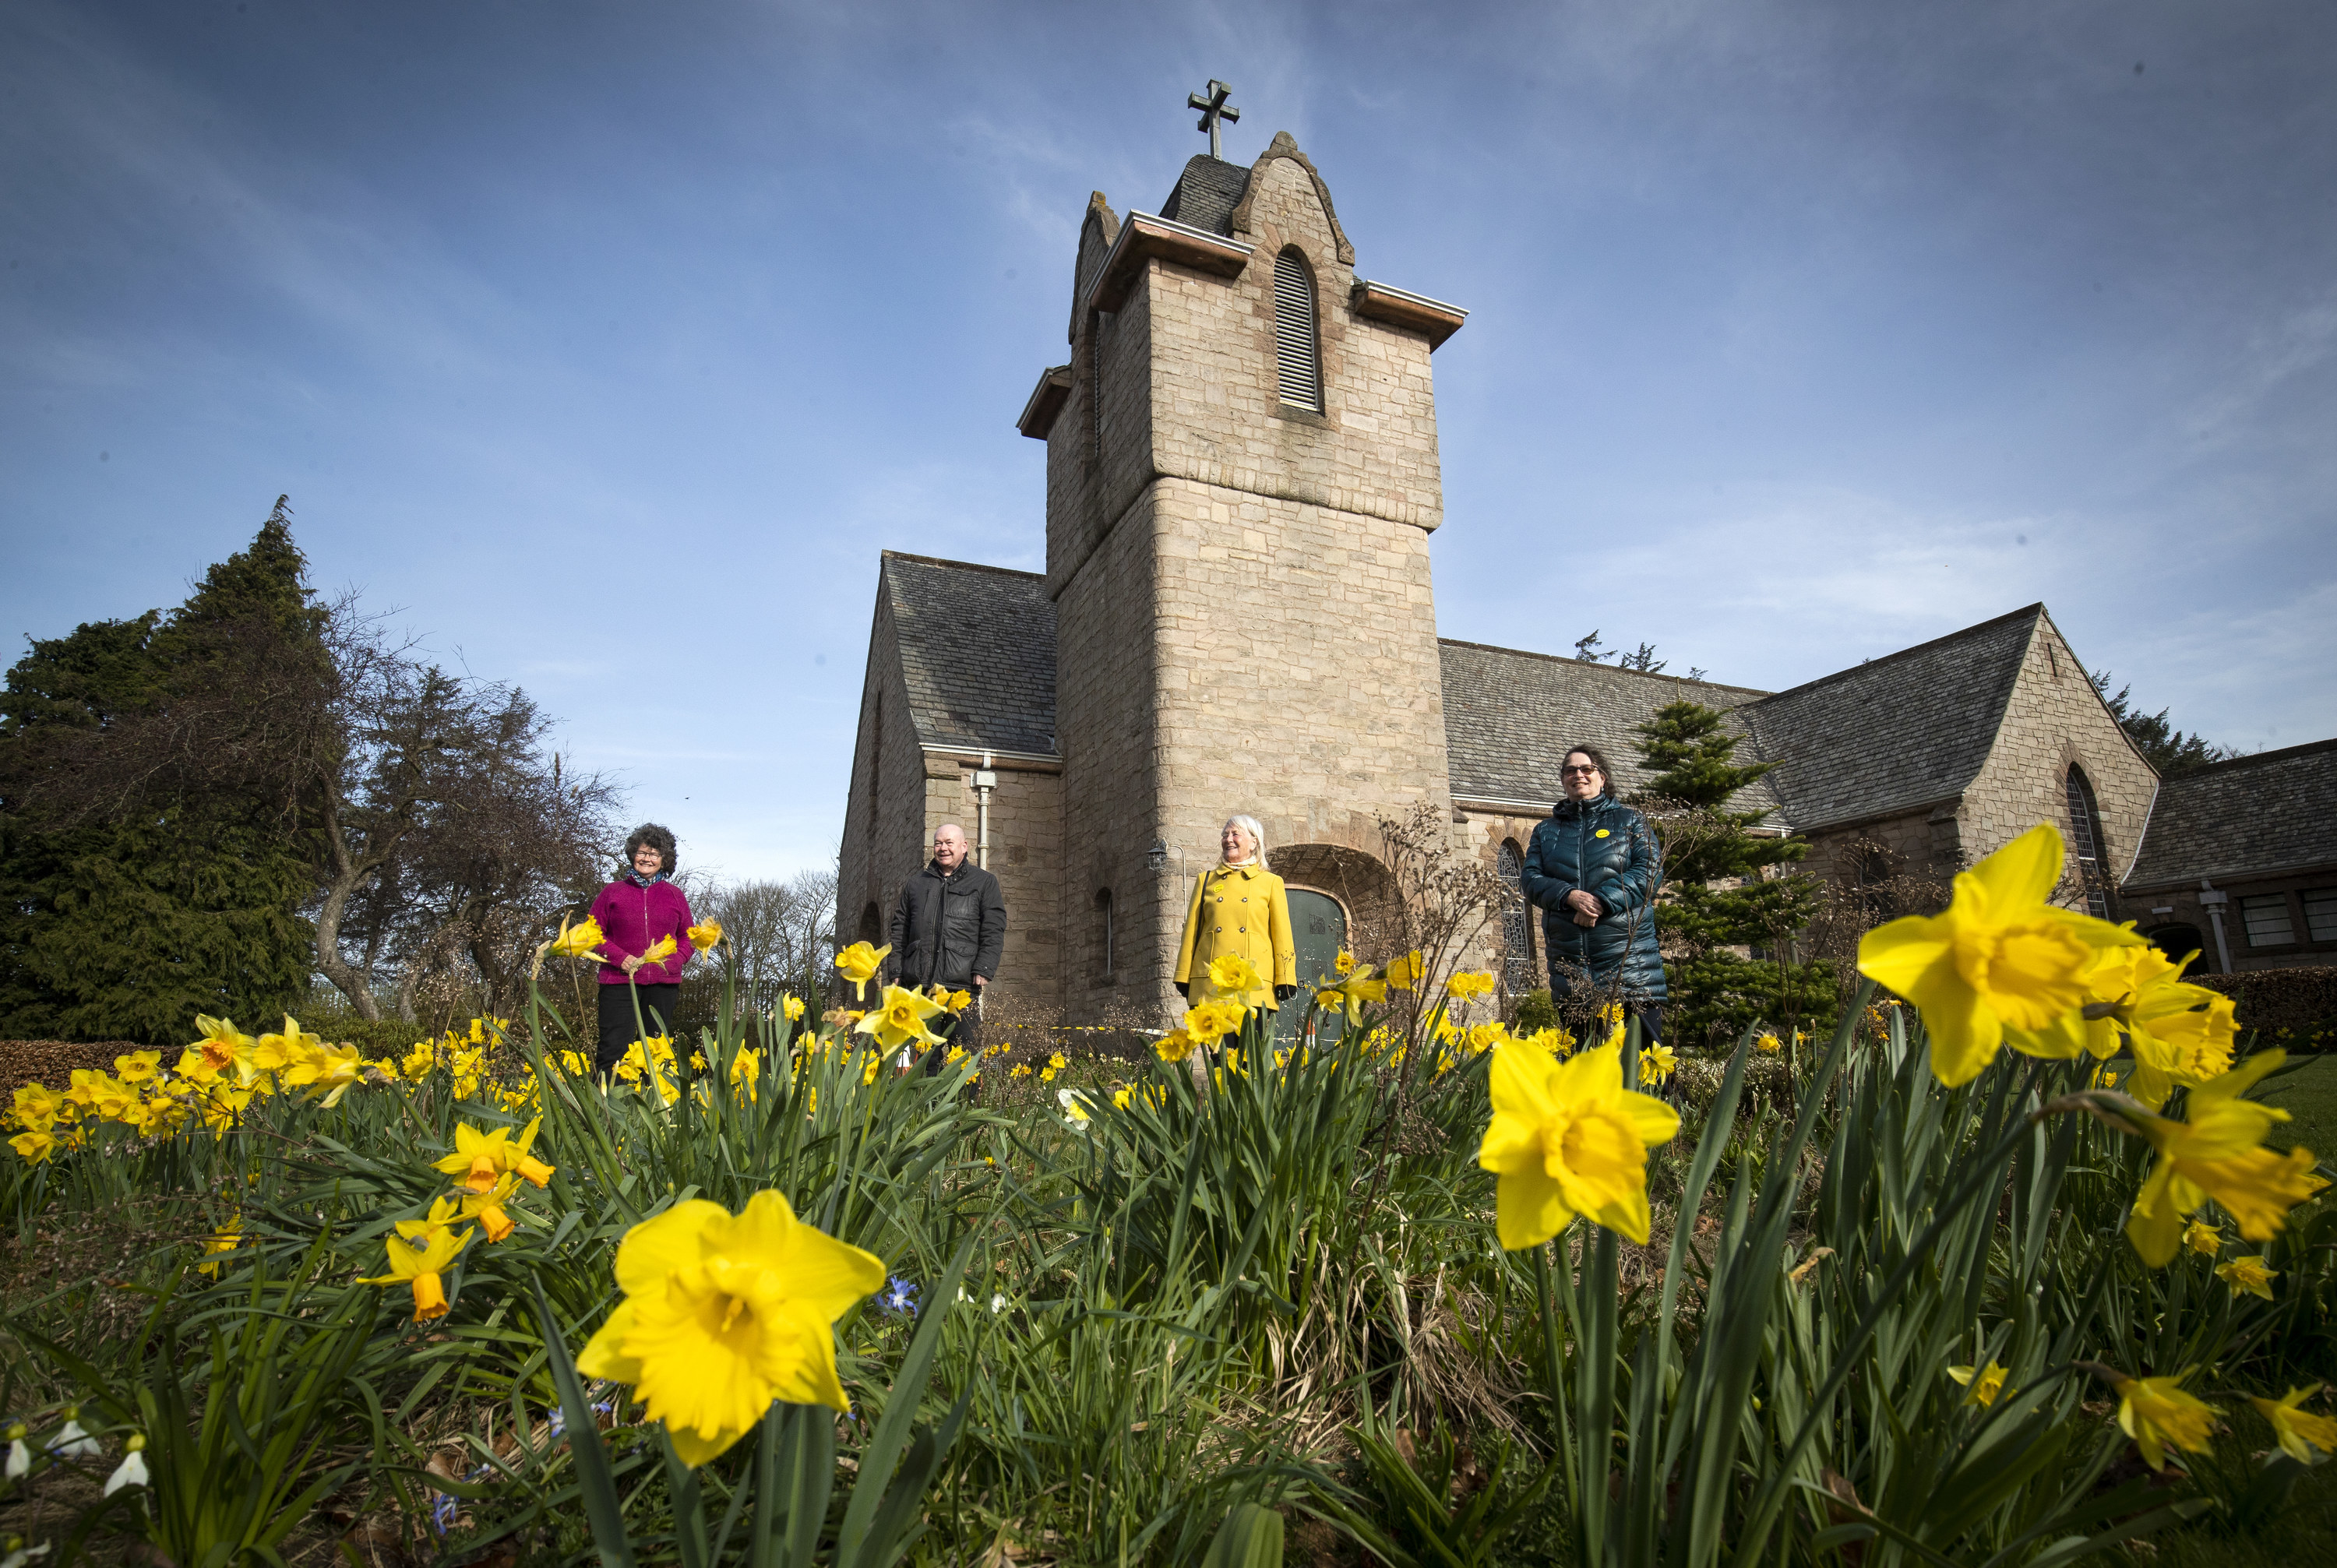 People standing outside of a church with daffodils in full bloom